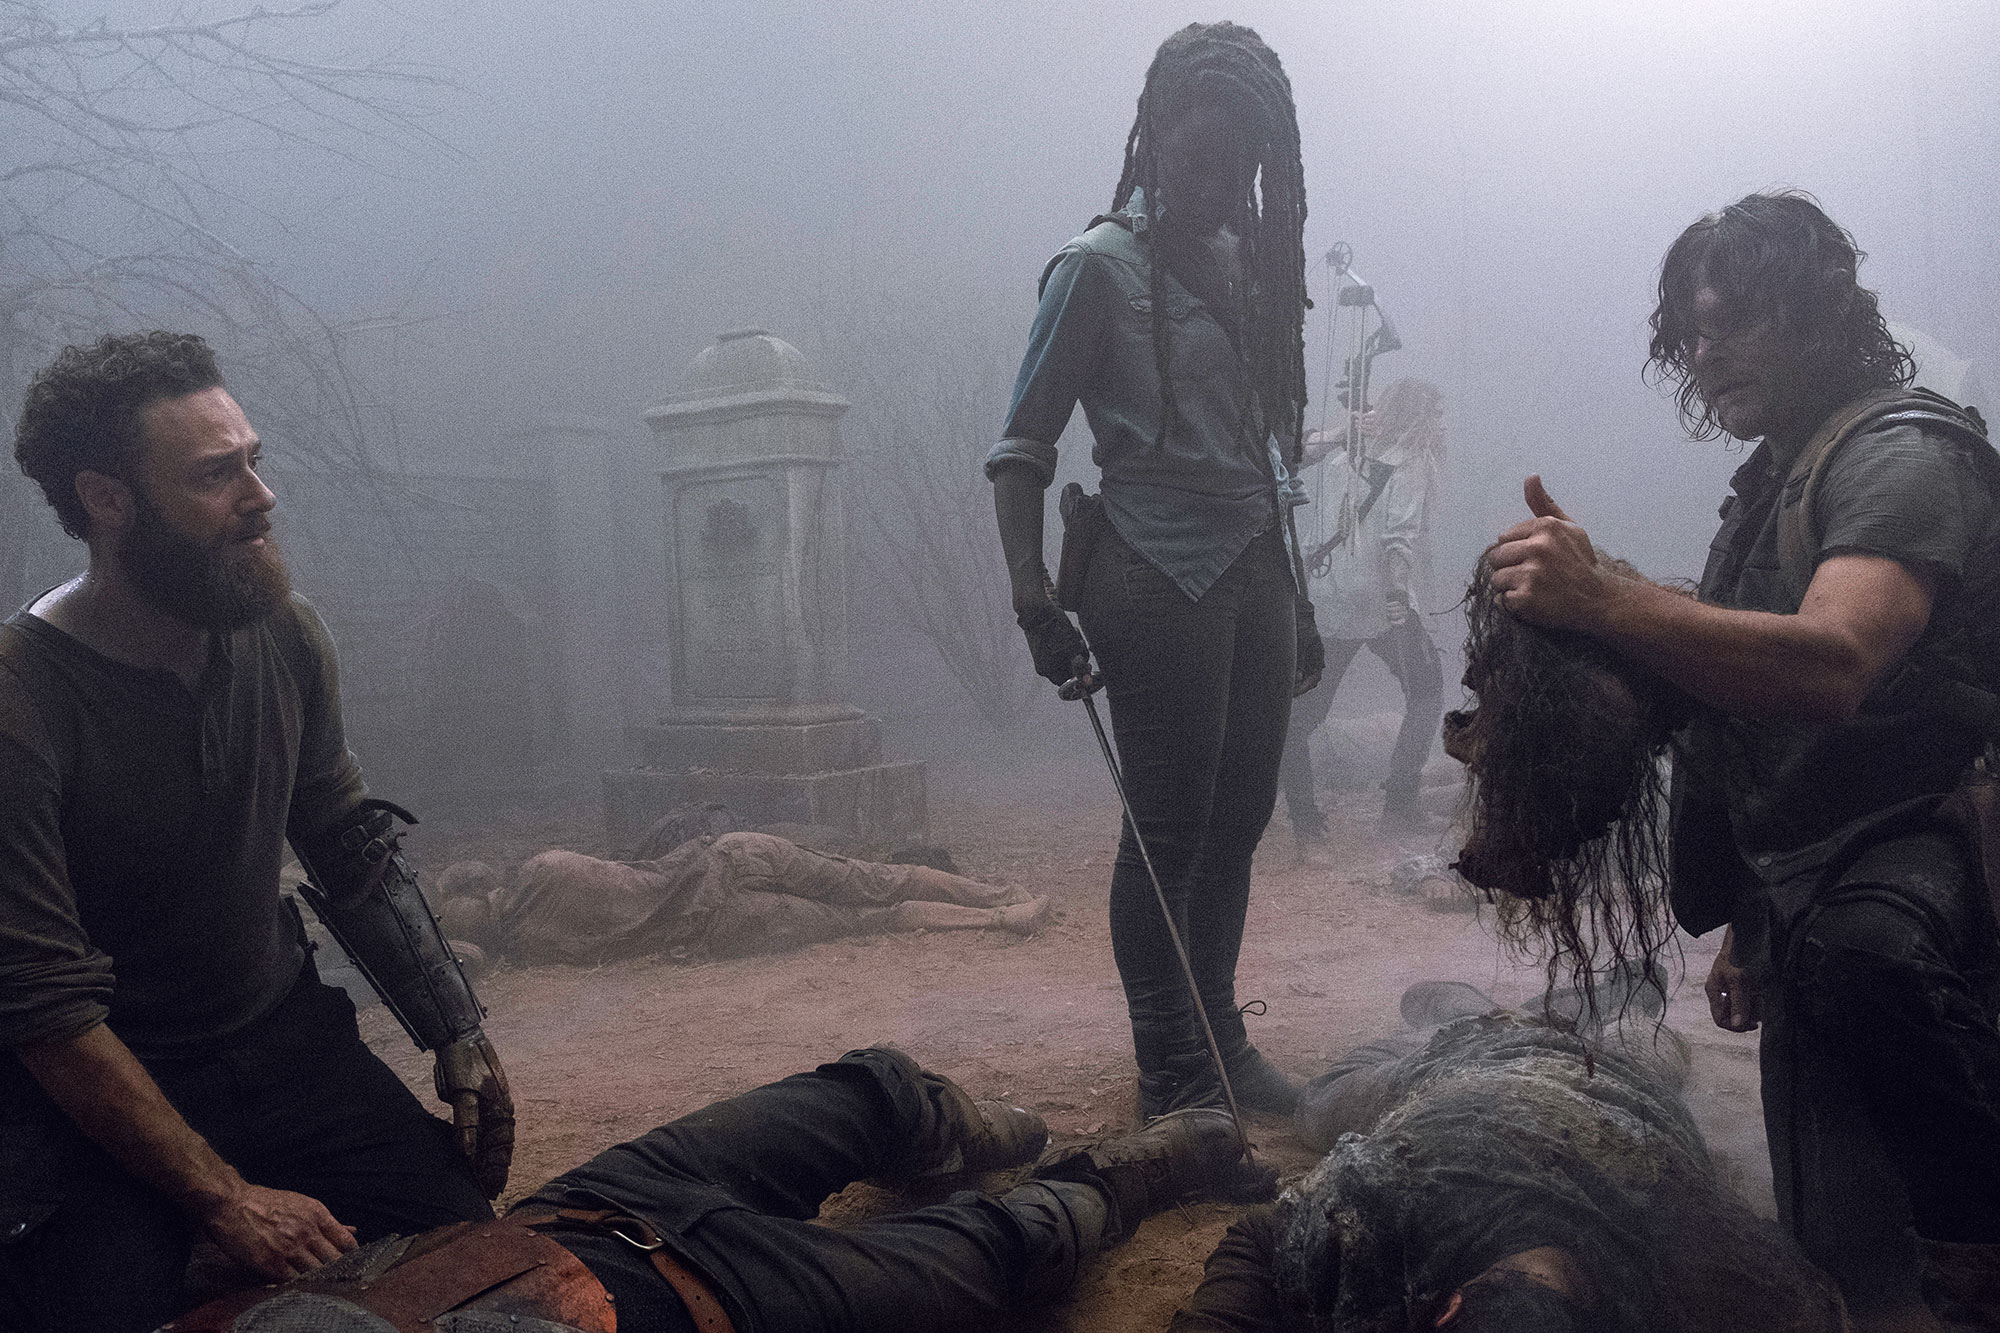 the walking dead - Norman Reedus as Daryl Dixon, Tom Payne as Paul 'Jesus' Rovia, Danai Gurira as Michonne, Ross Marquand as Aaron – The Walking Dead _ Season 9, Episode 8